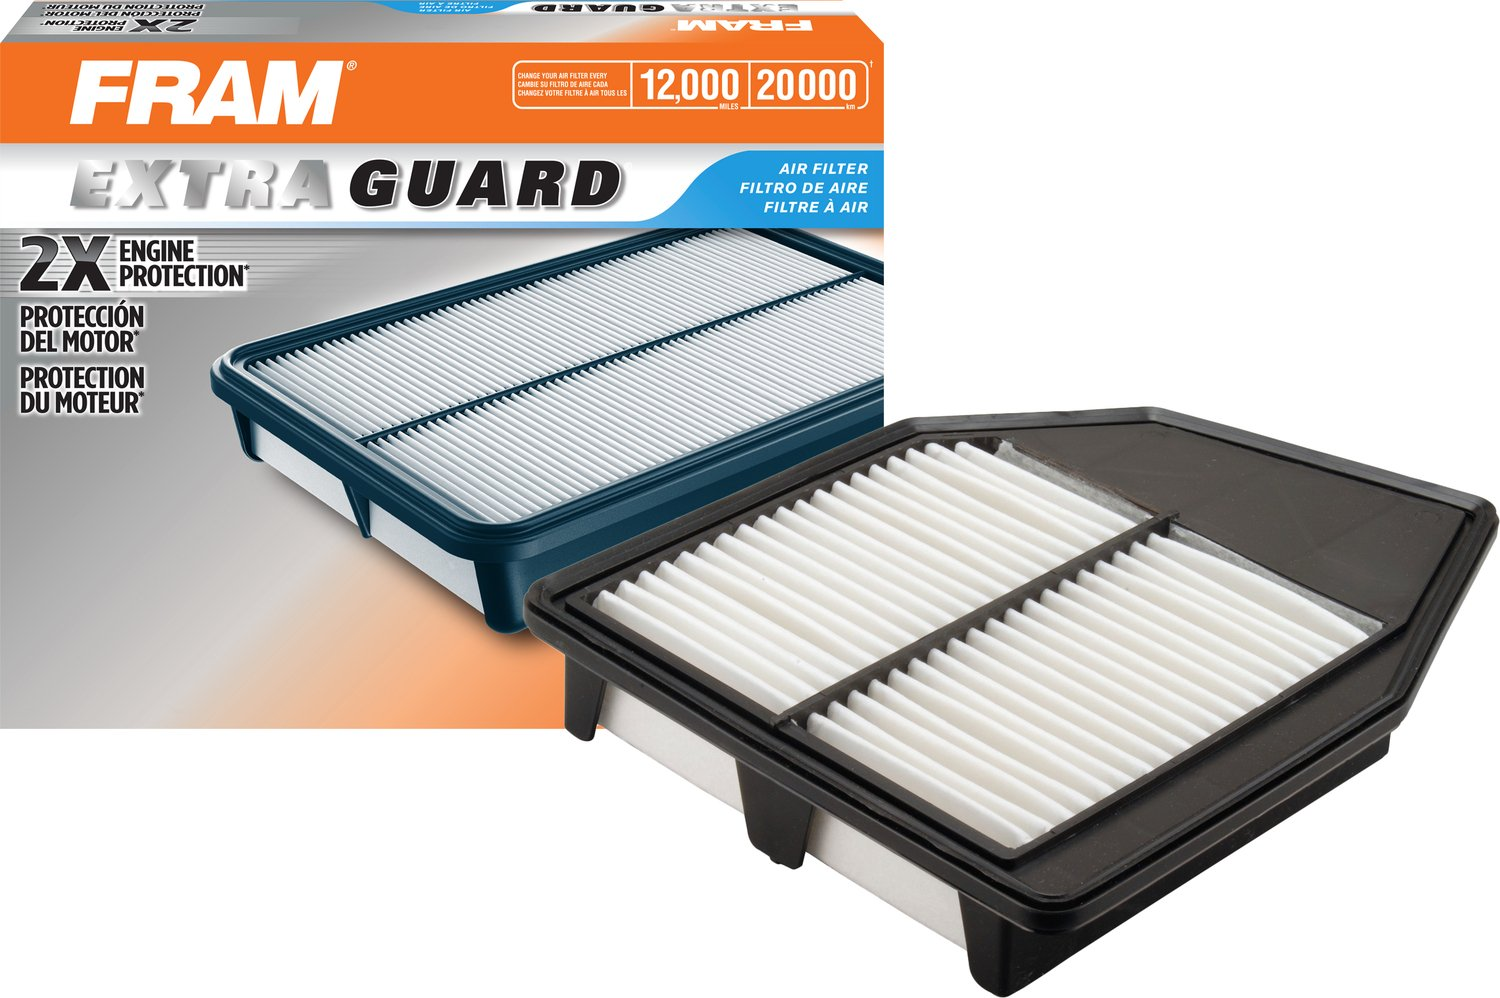 FRAM CA10467 Extra Guard Rigid Panel Air Filter